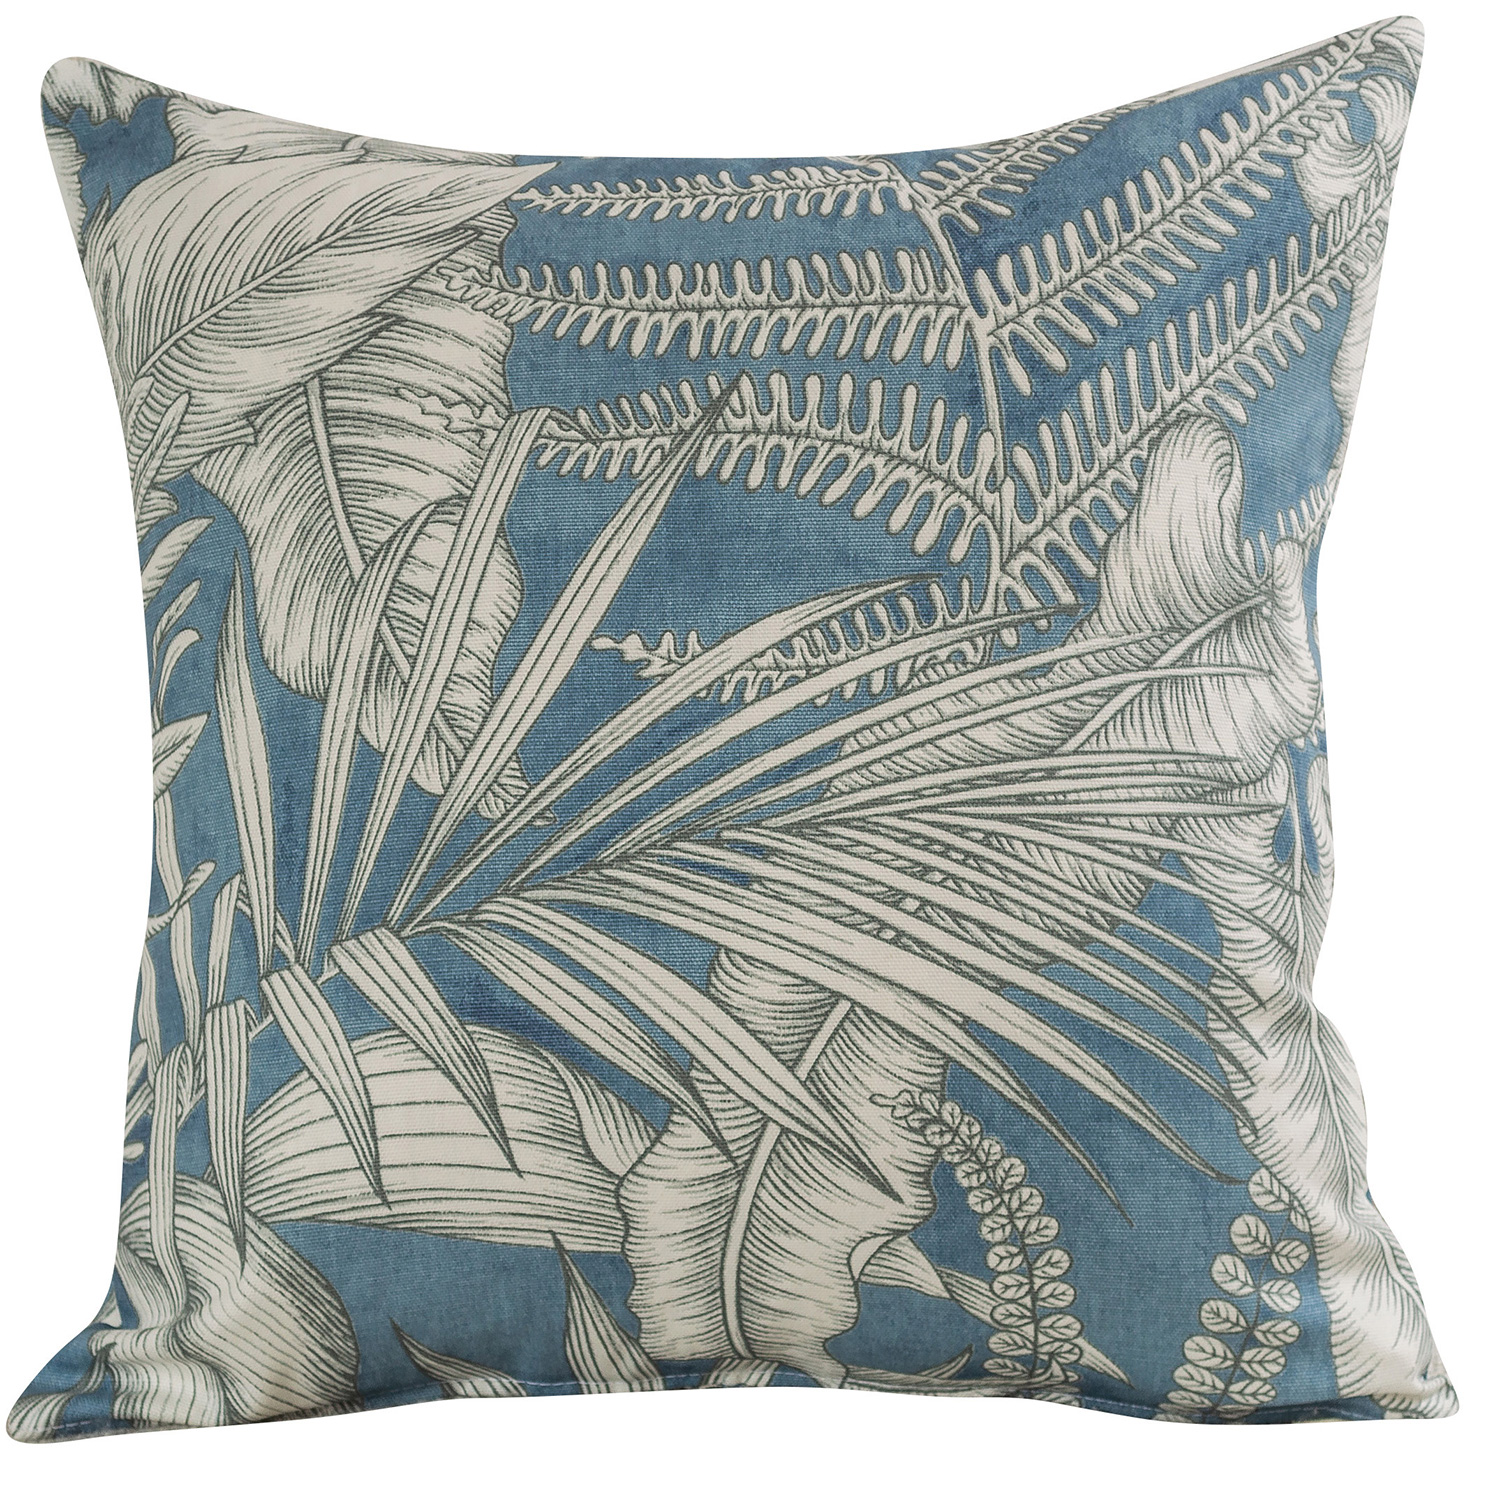 Neon Floral Cushion in Denim Blue